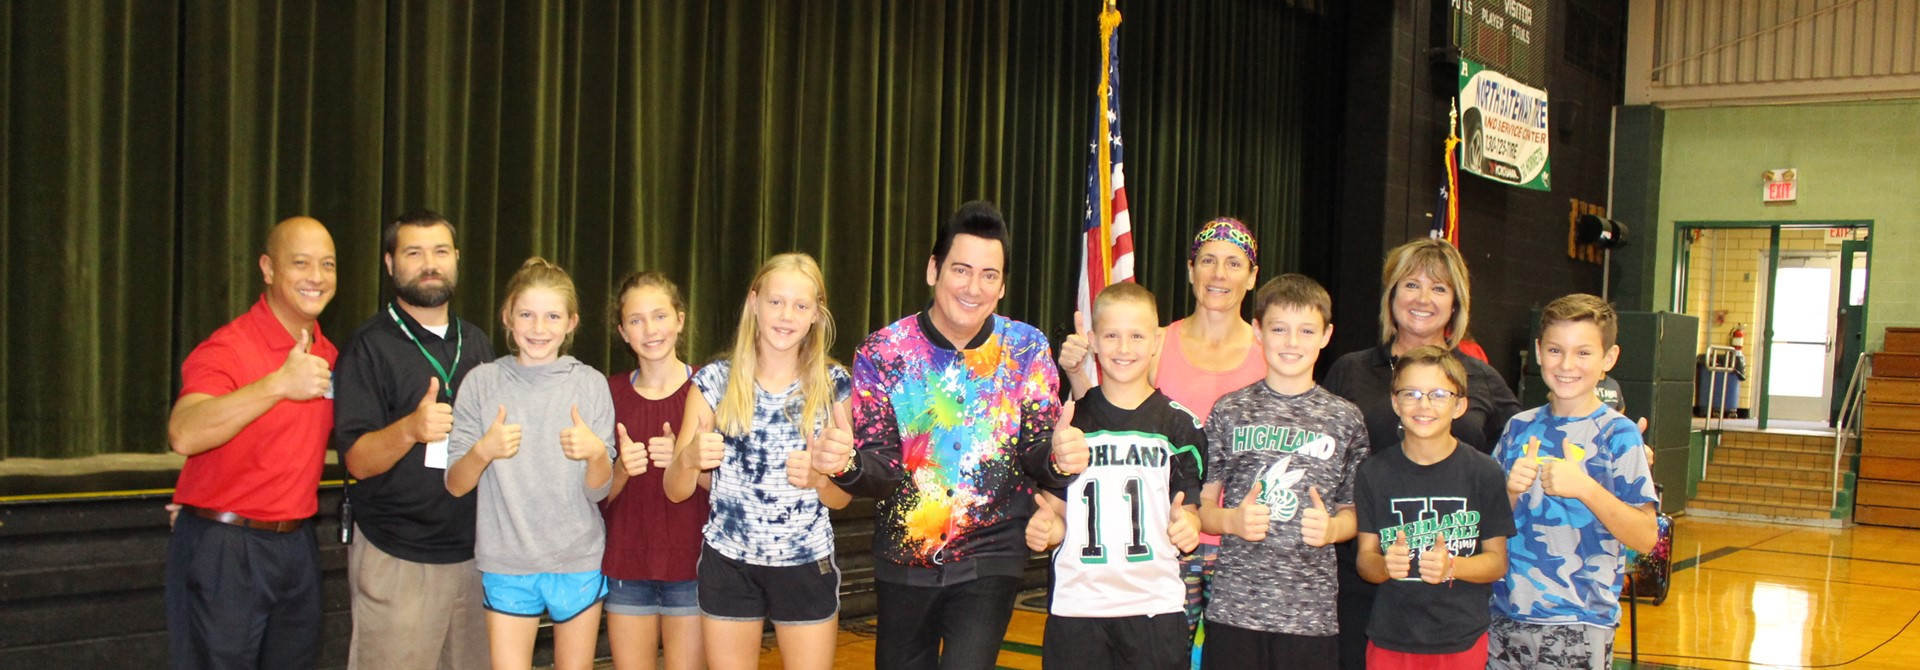 Retro Bill Visits Highland Middle School